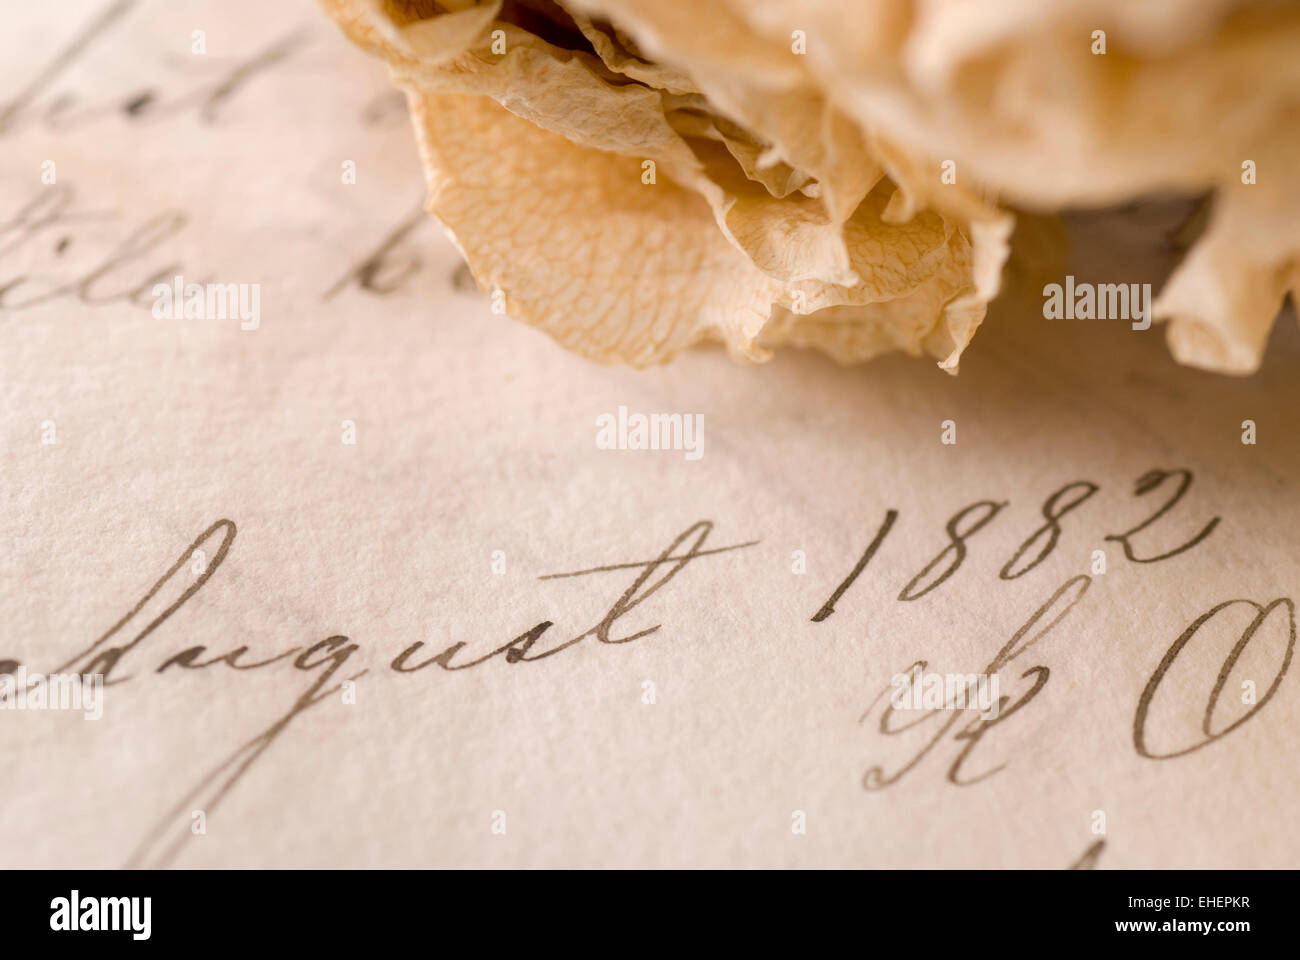 Old document from 1882 with a dried rose. - Stock Image